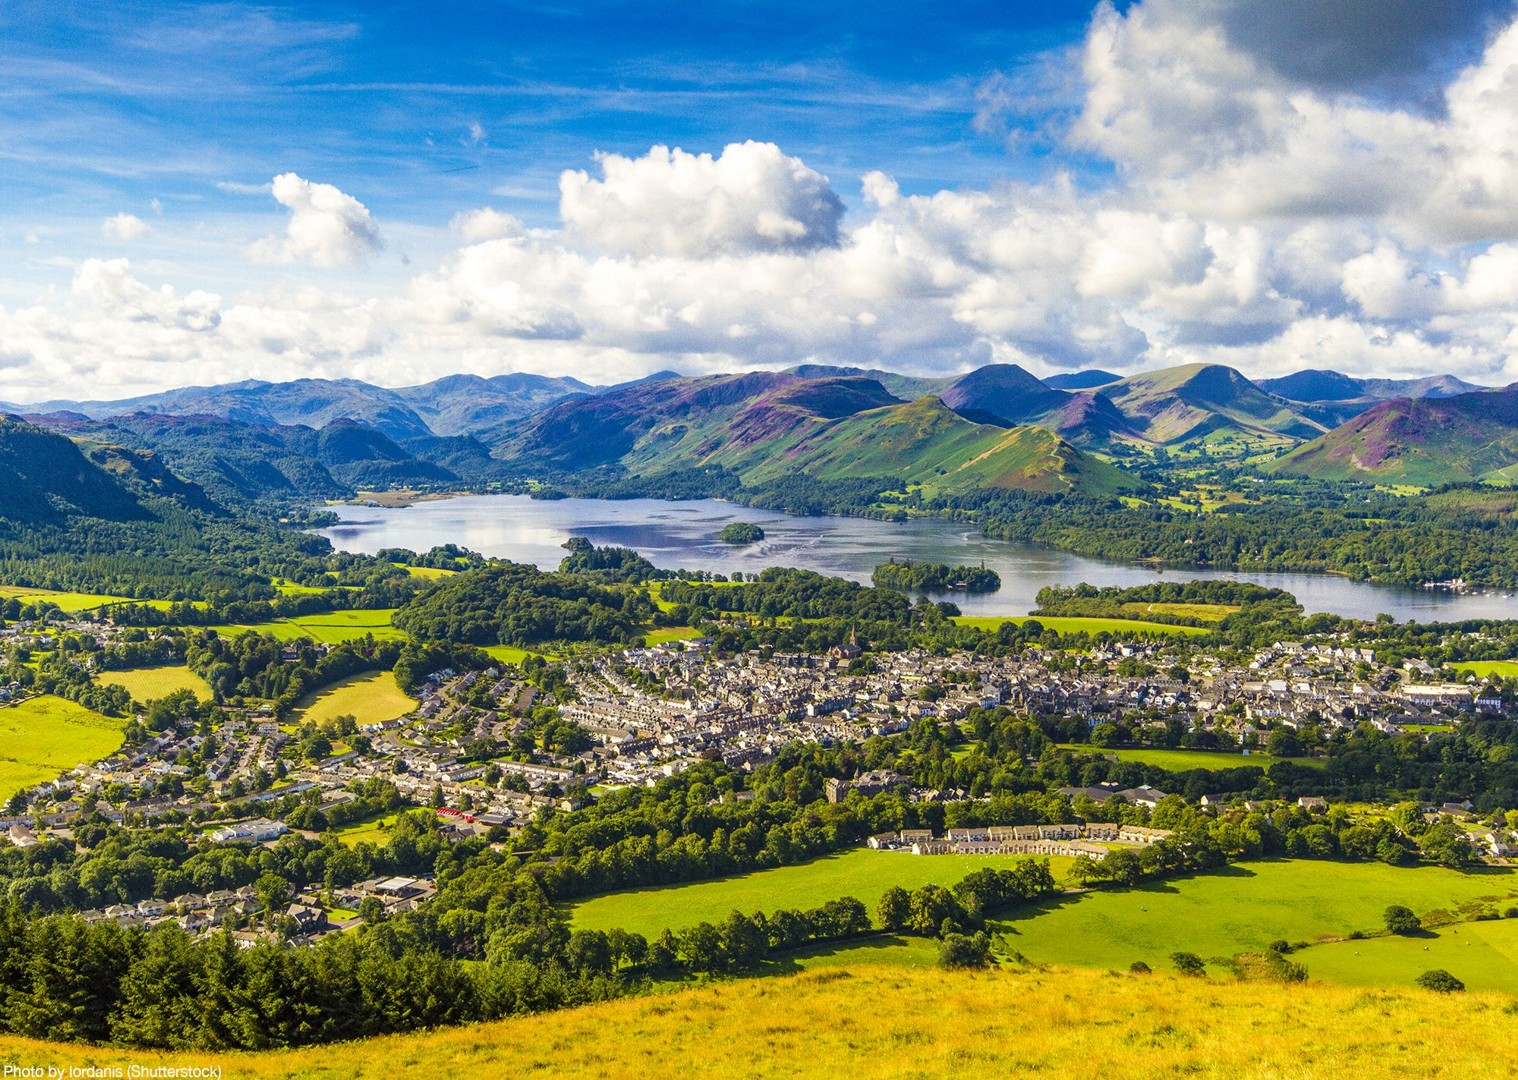 derwent-bank-keswick-hills-leisure-lakes-cycling-local-villages.jpg - UK - Lake District - Derwent Water - Self-Guided Leisure Cycling Holiday - Leisure Cycling